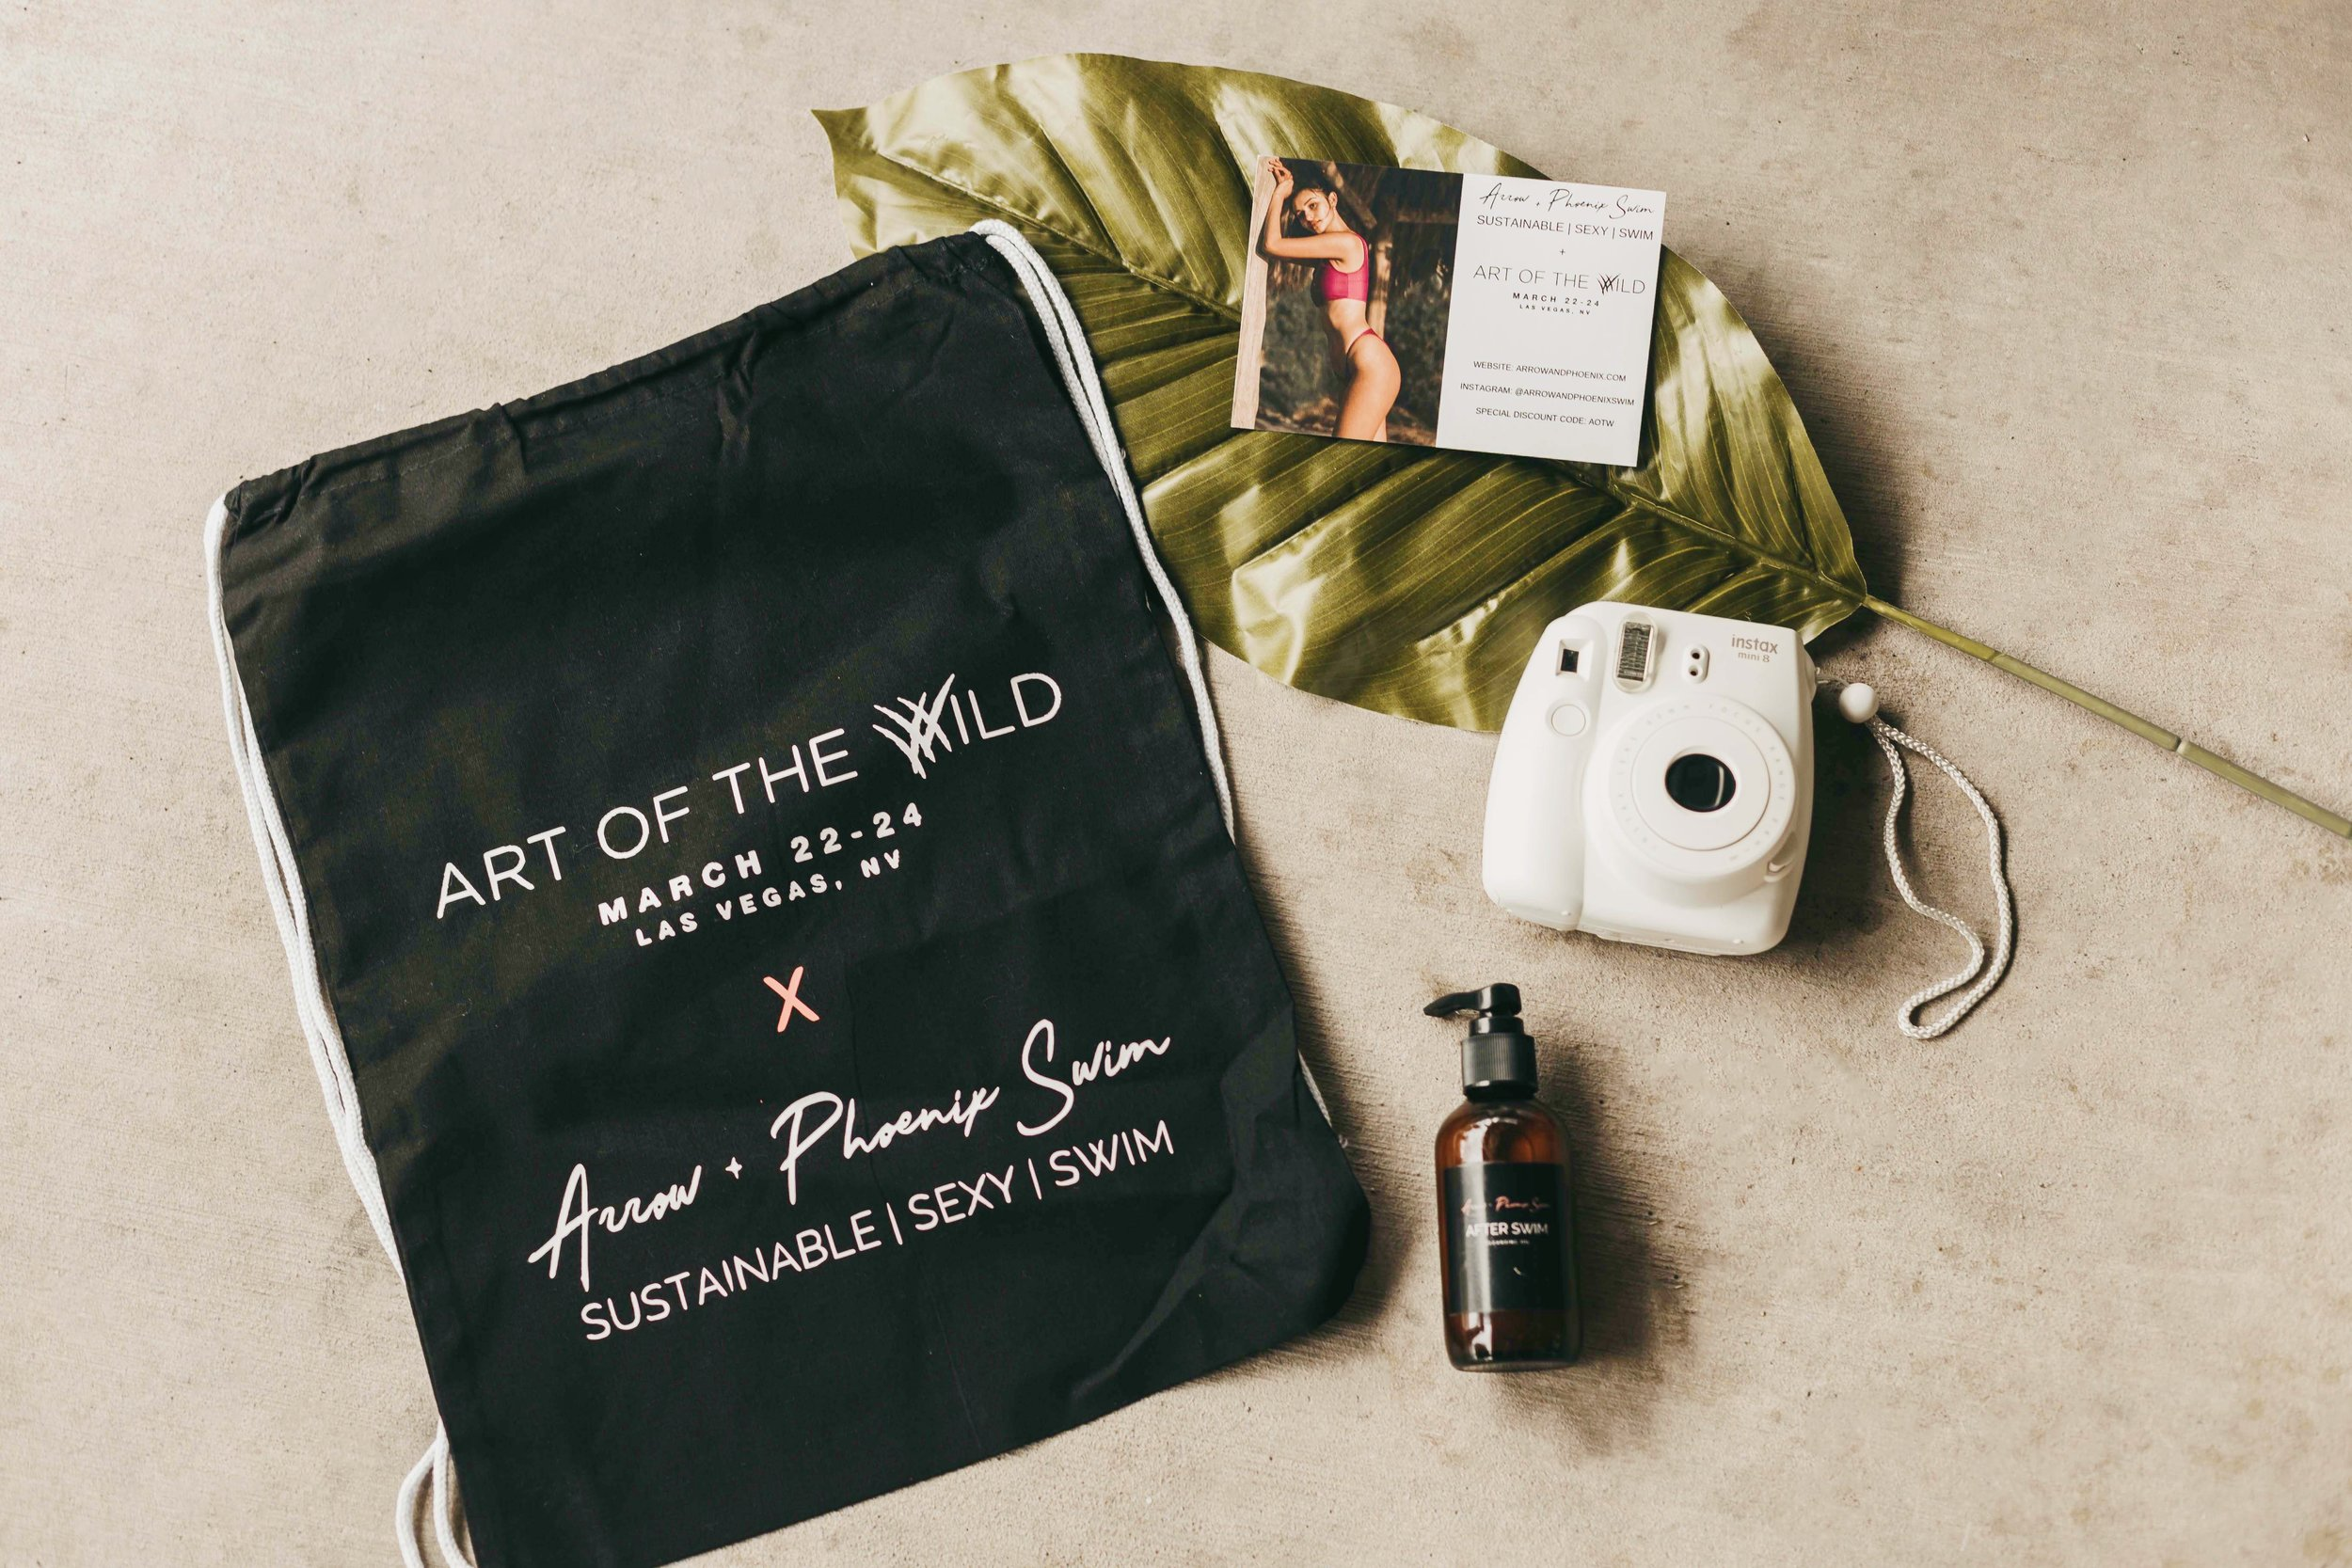 Art of the wild at the wynn hotel las vegas - We're excited to kick off our spring 2019 season with The Wynn Hotel Las Vegas for their Art of the Wild event this March!